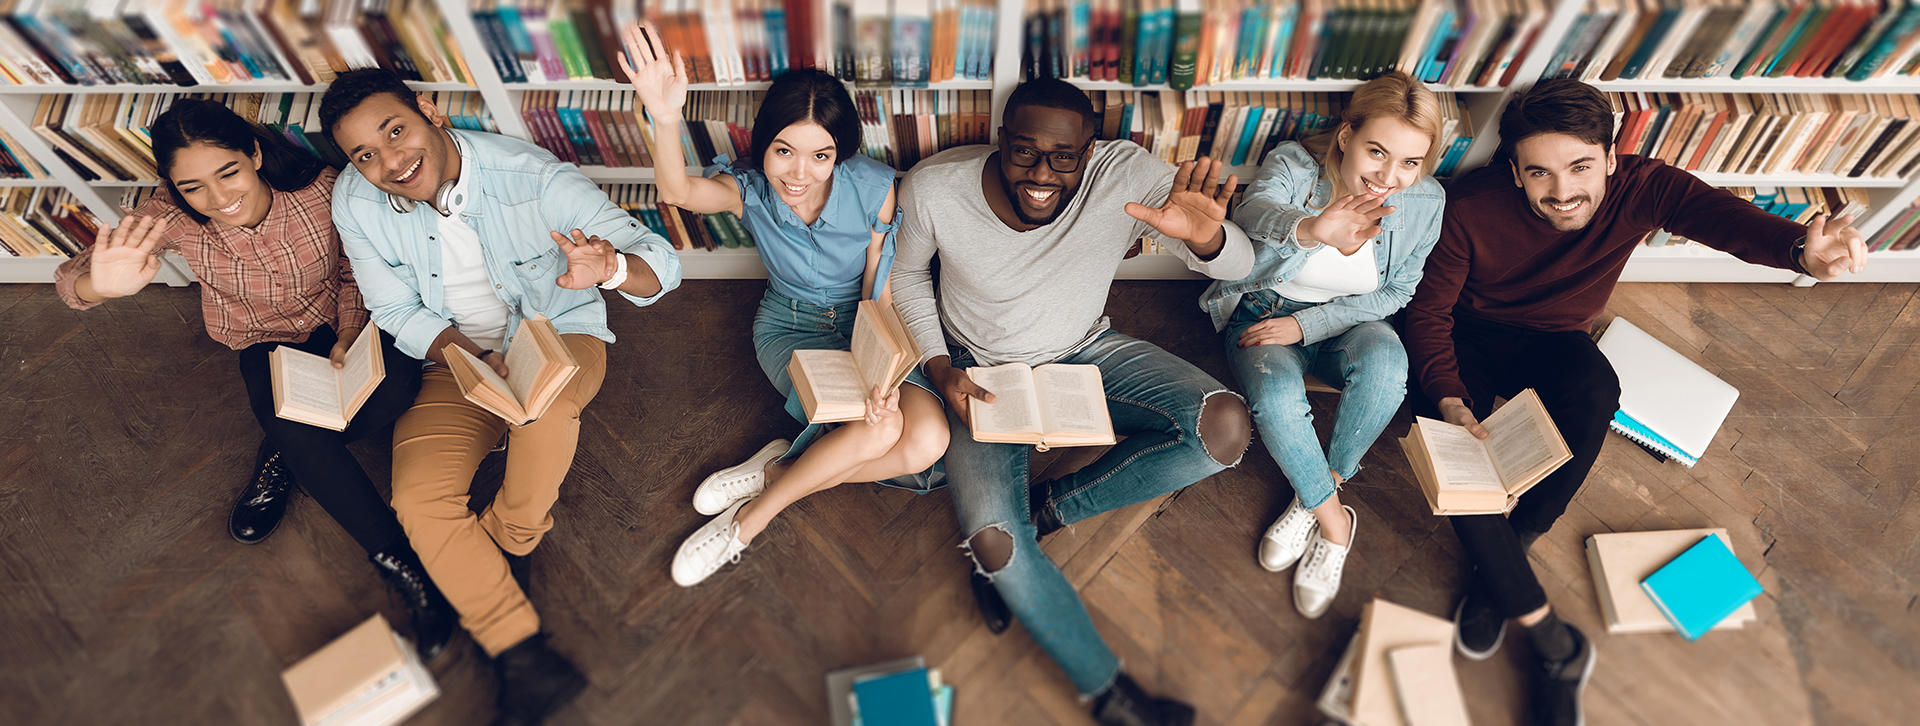 Stock photo of students in library